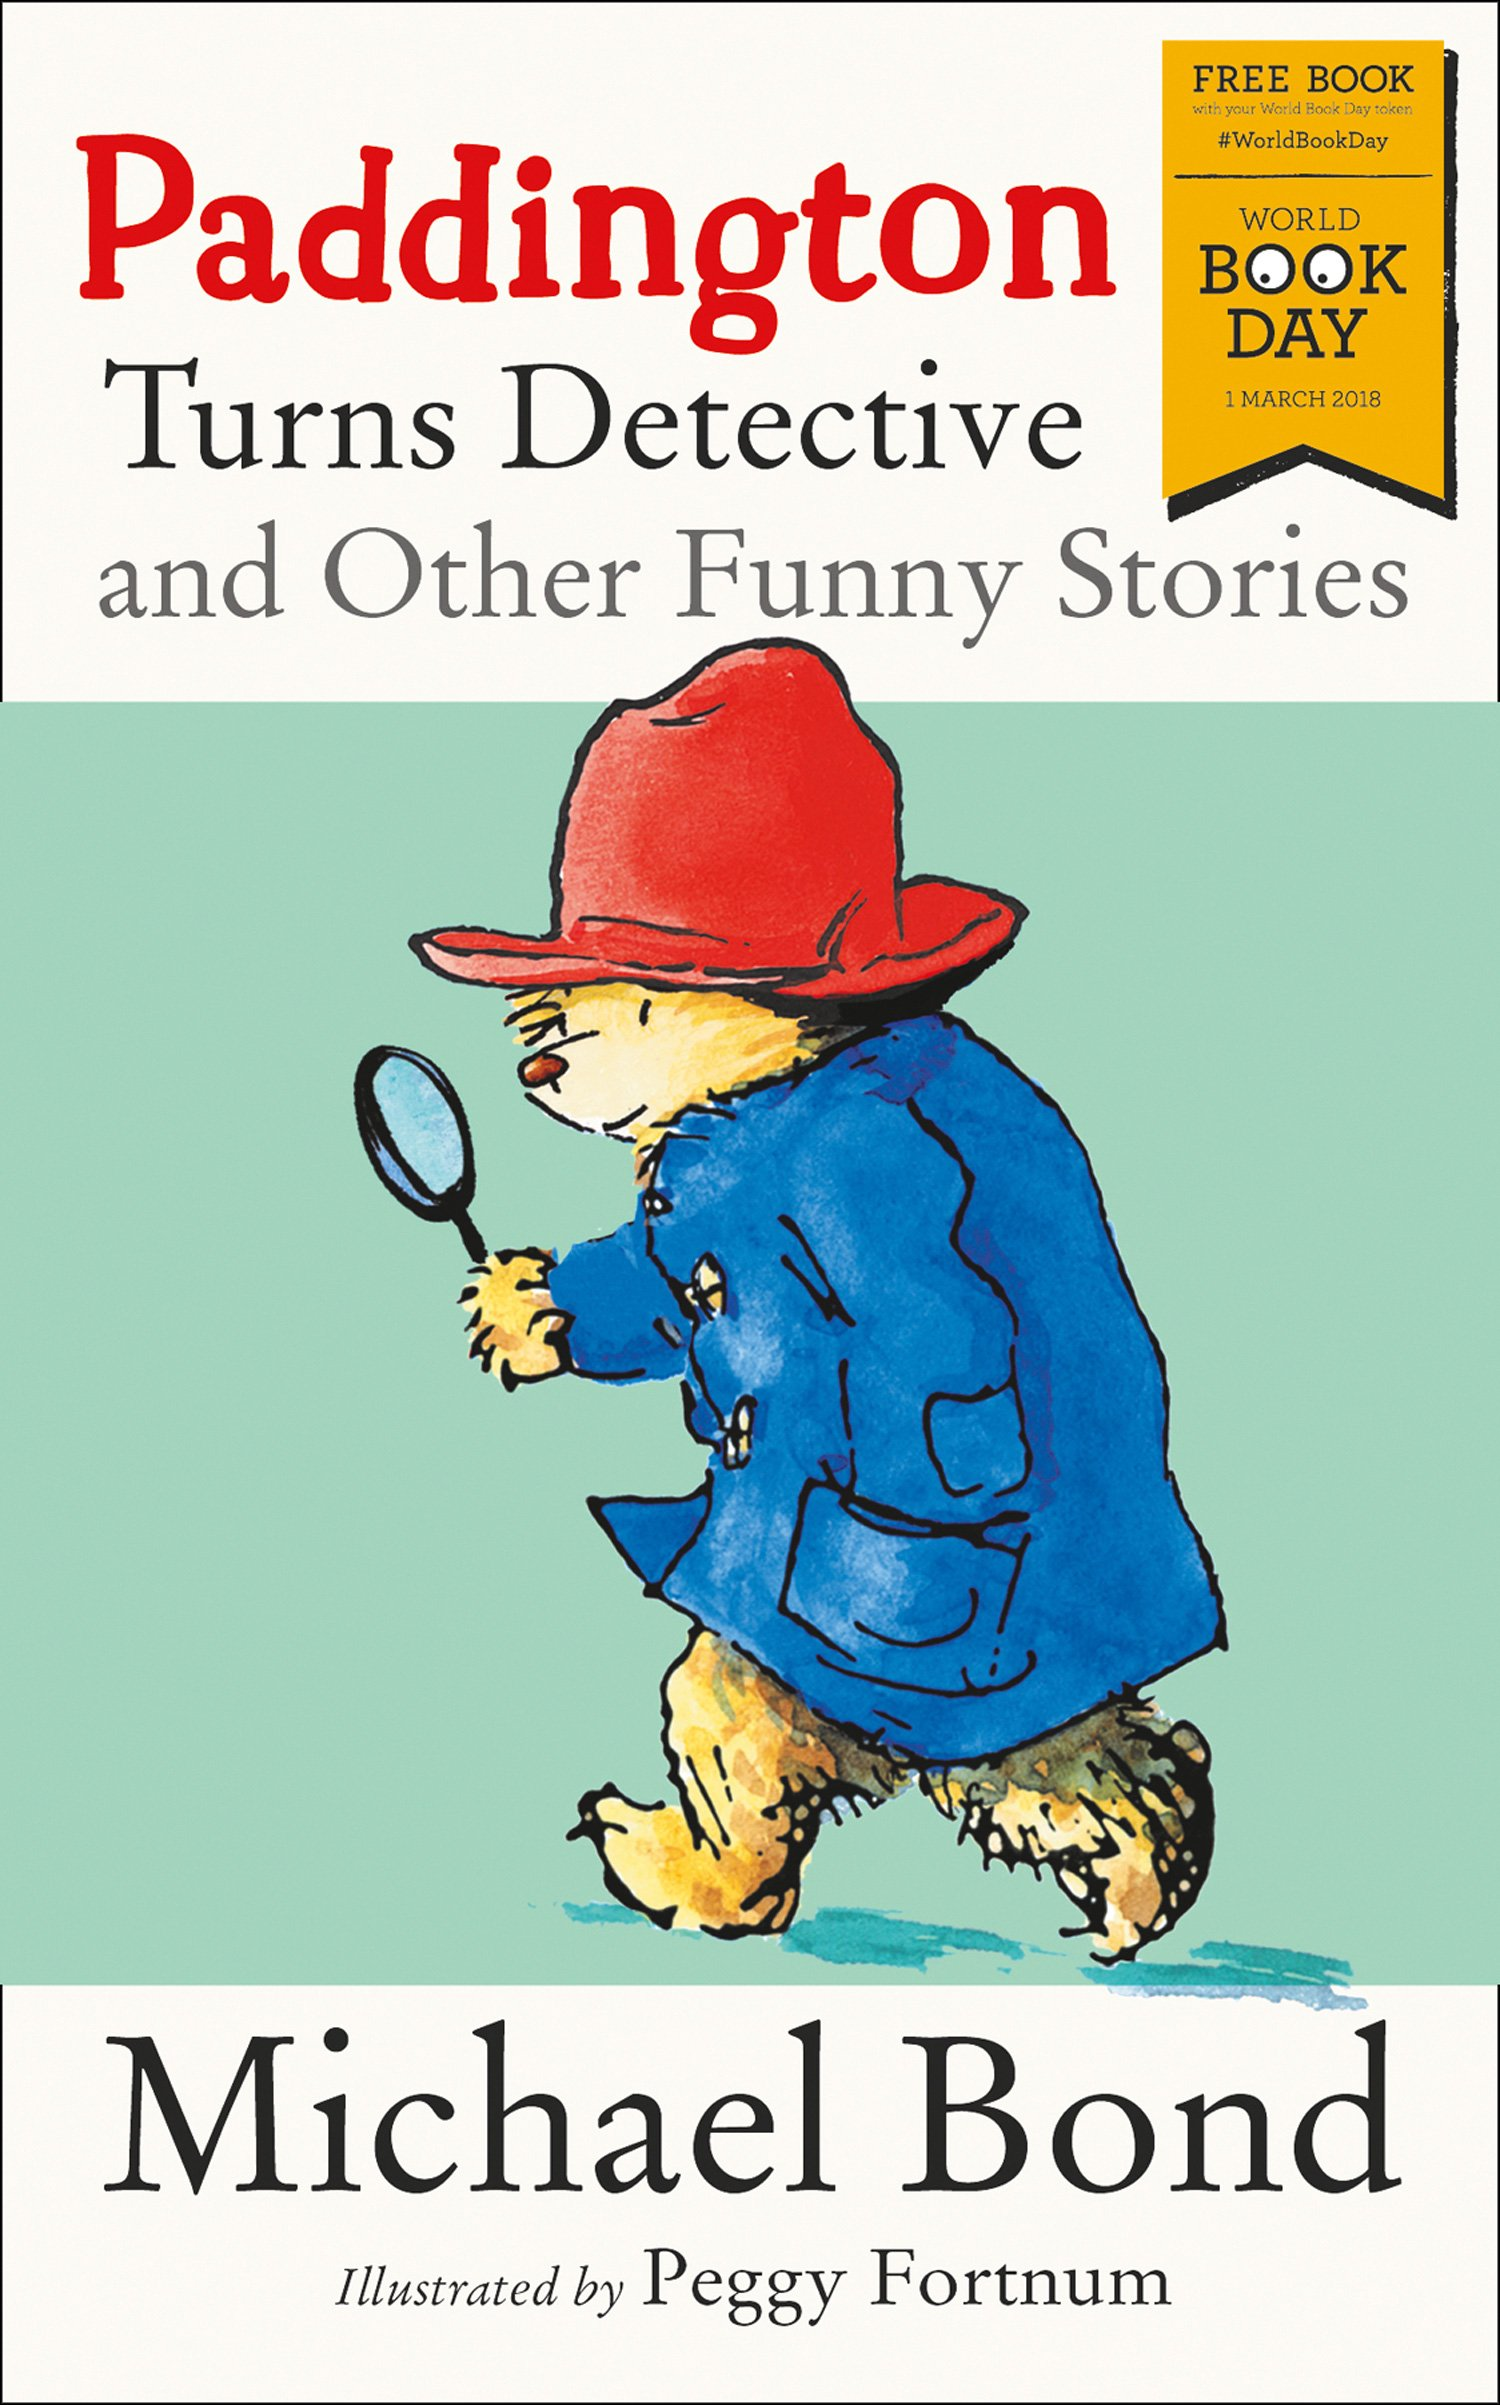 Book cover for Paddington Turns Detective and Other Funny Stories